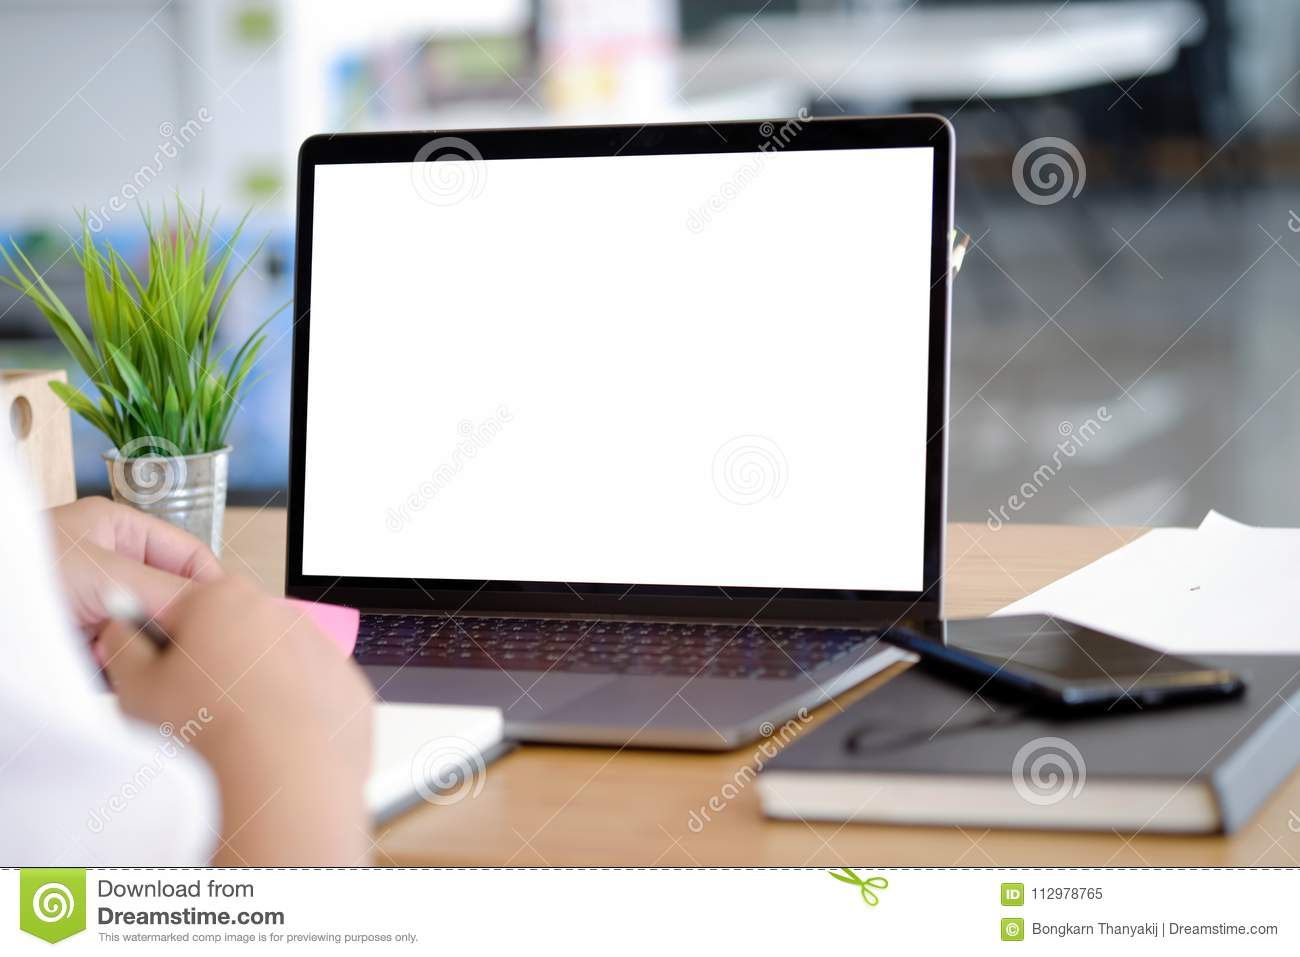 Business man working with laptop on desk